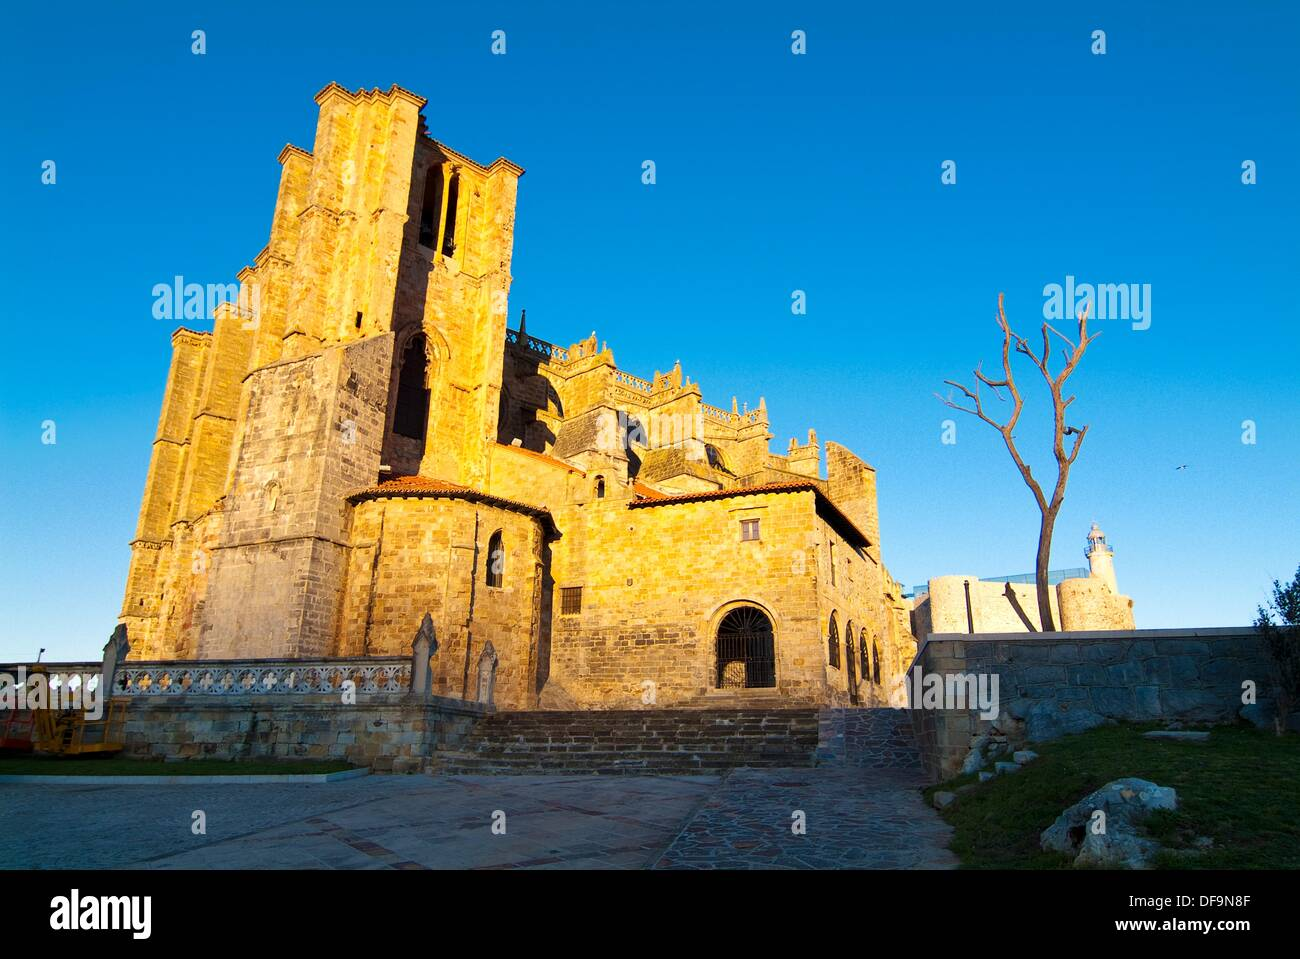 Church of St. Mary of the Assumption, the thirteenth century. Castro Urdiales. Cantabria. Spain. Stock Photo